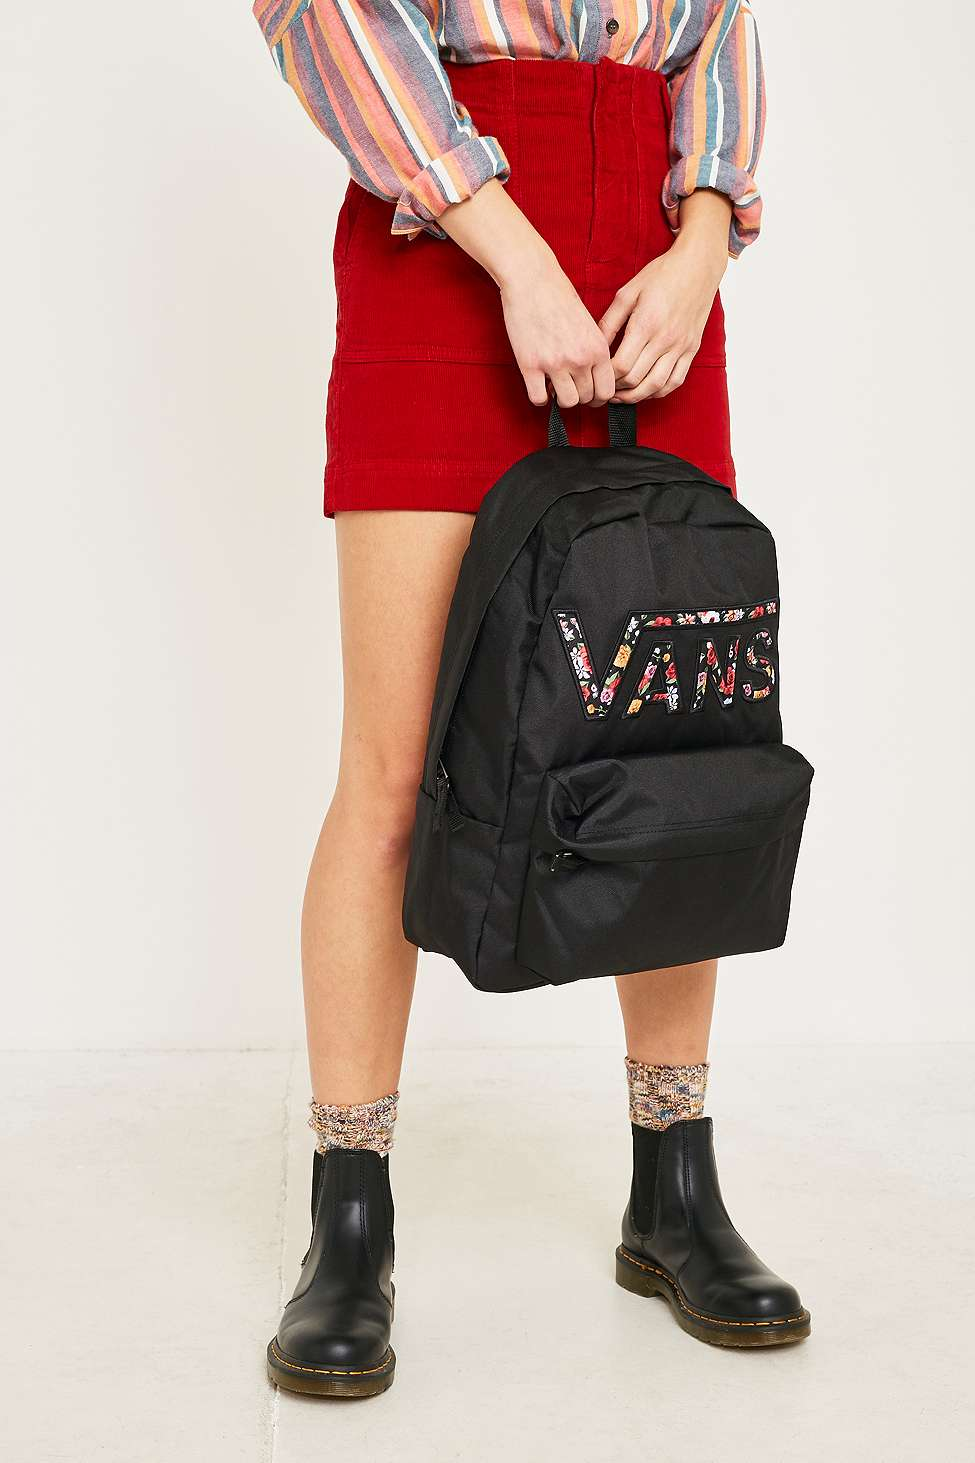 Vans Sac A Dos Realm A Fleurs Urban Outfitters Fr